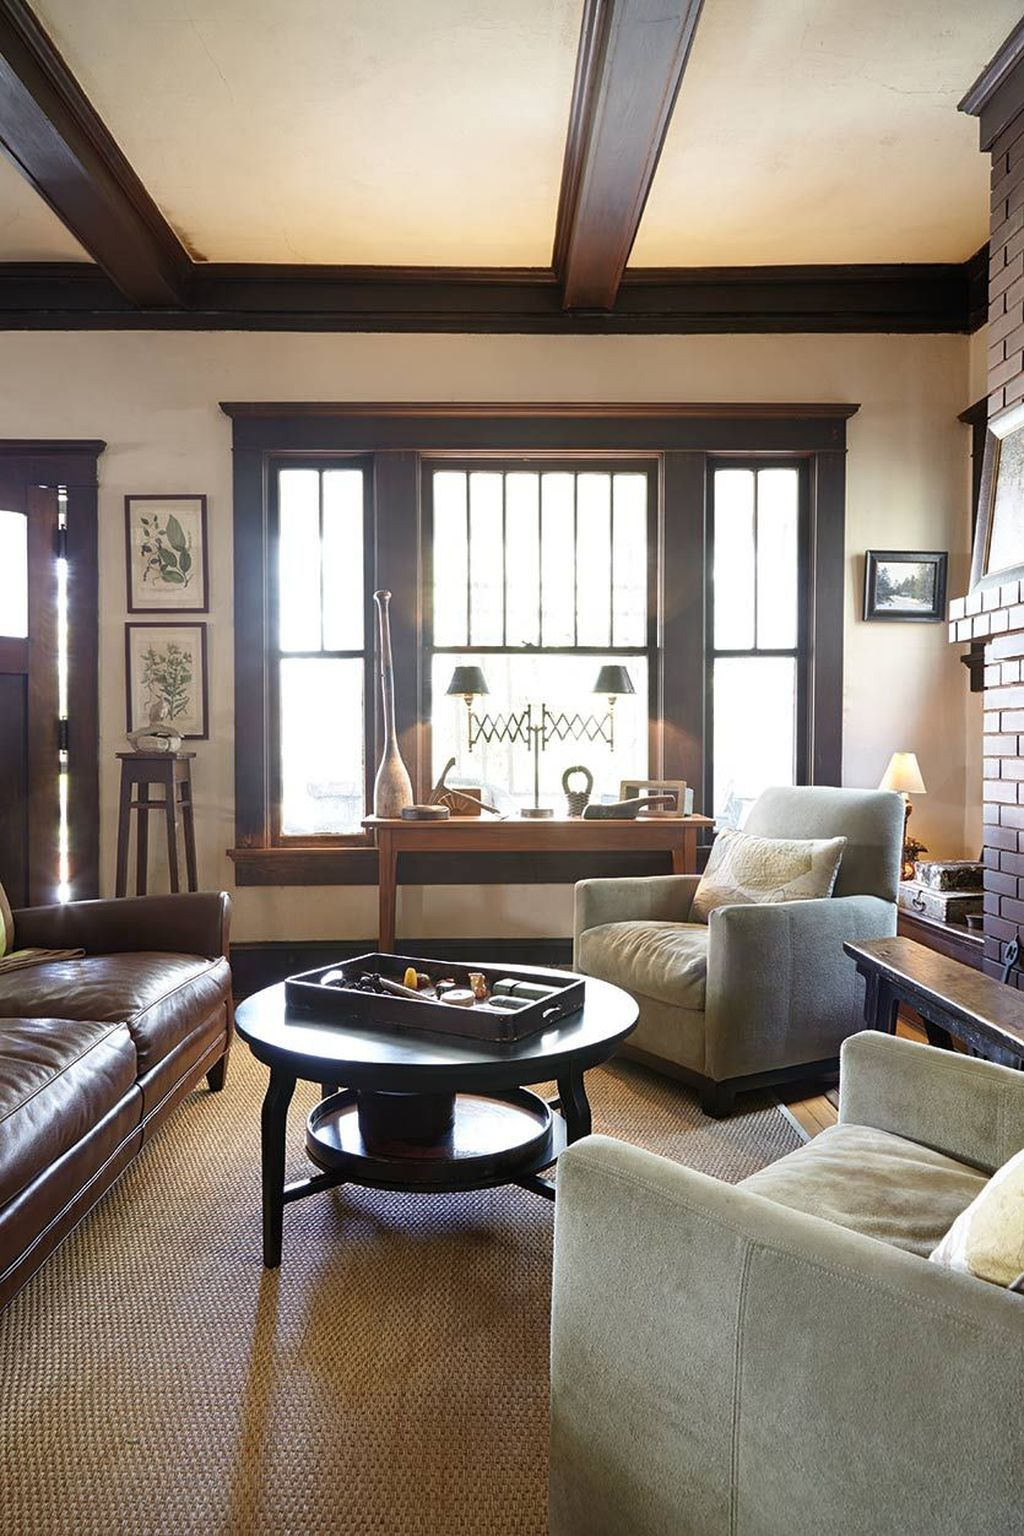 44 Stunning Craftsman Living Room Decor Ideas In 2020 Craftsman